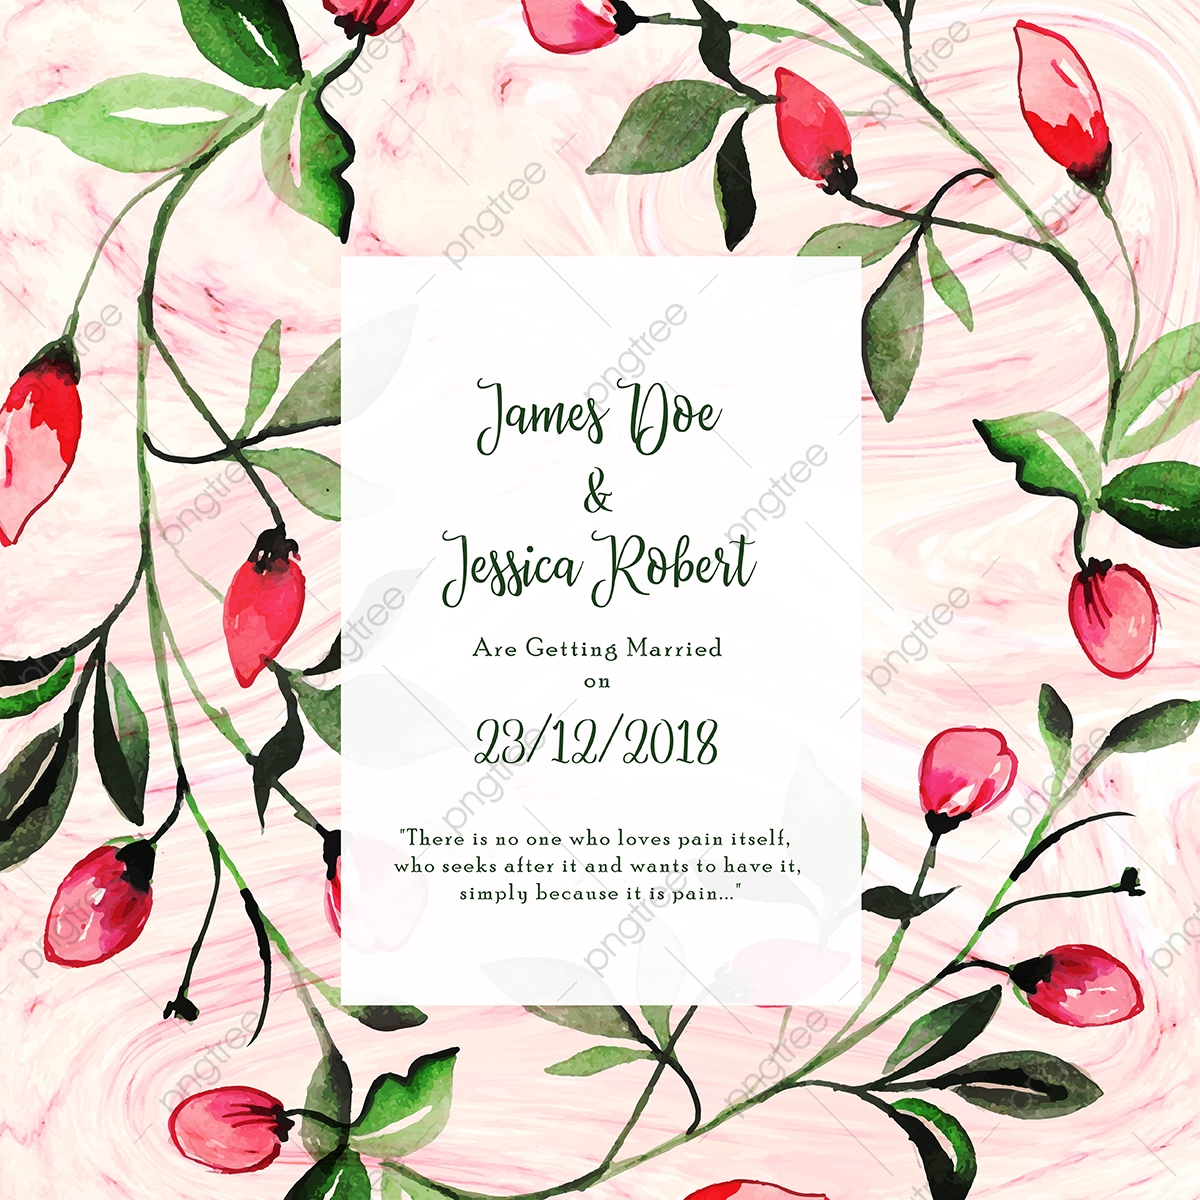 https pngtree com freepng abstract marble texture with floral wedding invitation card template 3617526 html